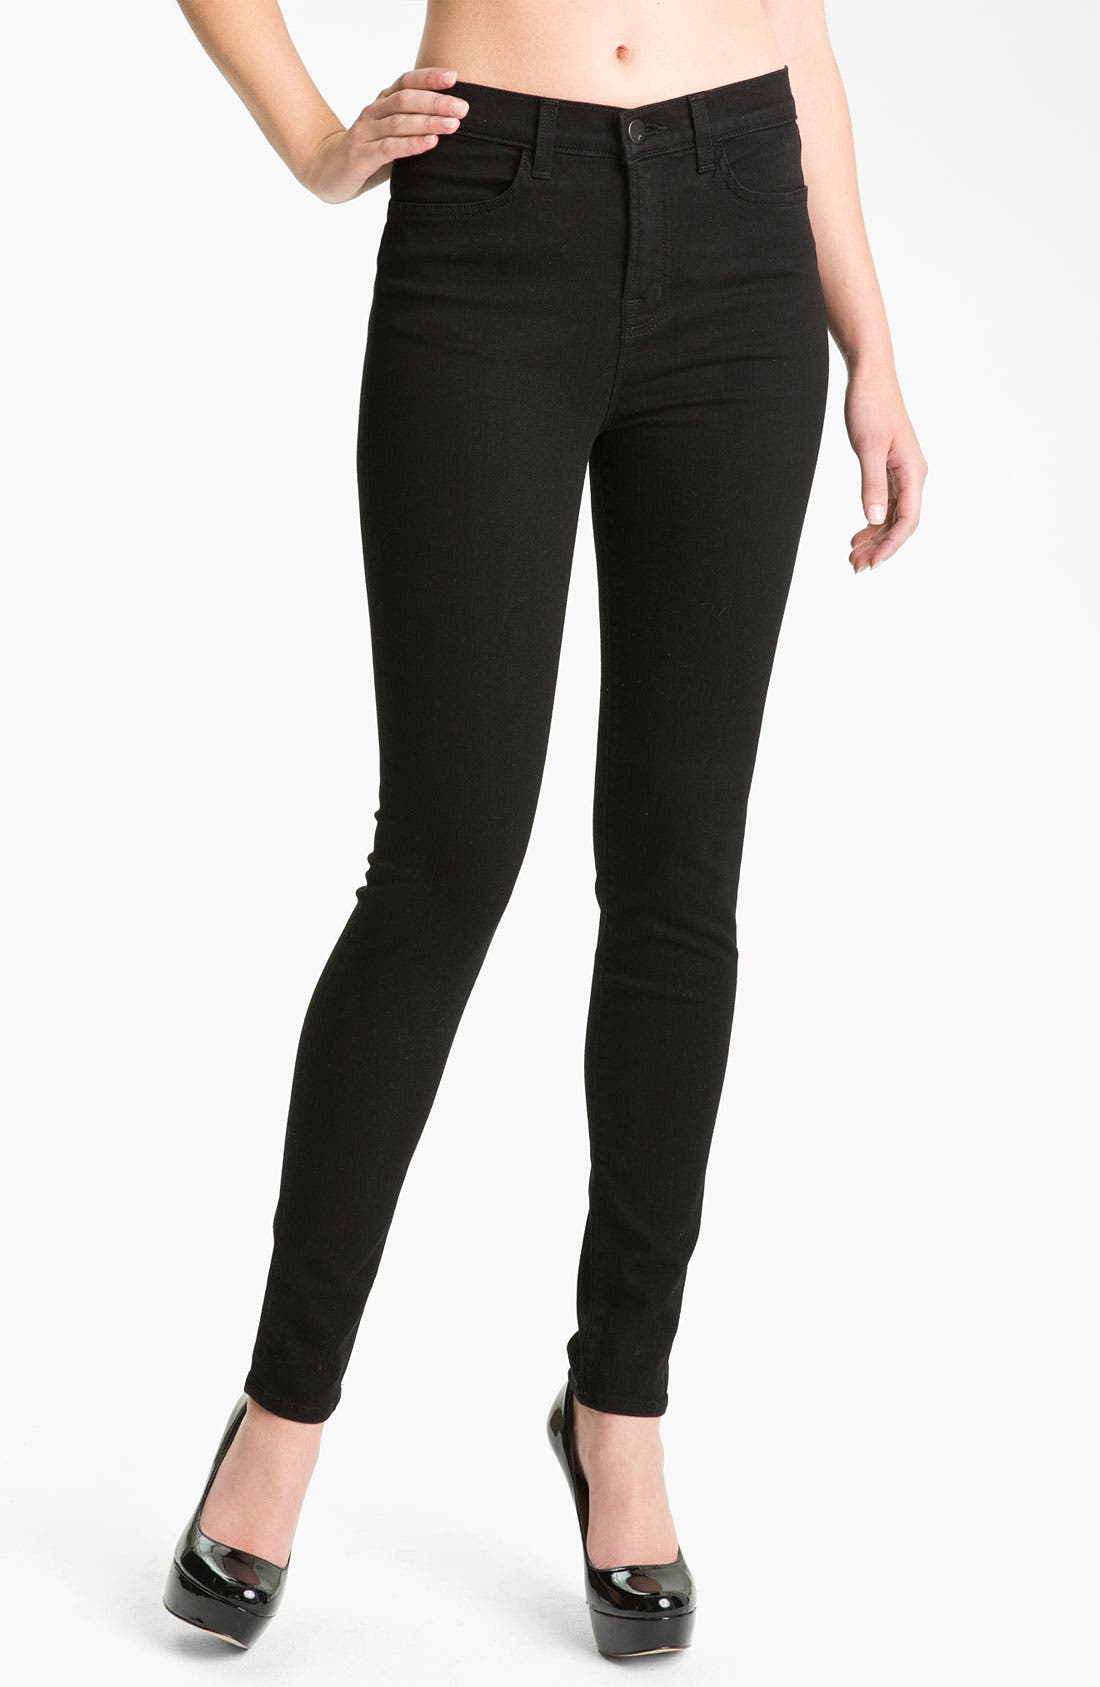 Alternate Image 1 Selected - J Brand '2311 Maria' High Rise Skinny Stretch Jeans (Hewson Wash)